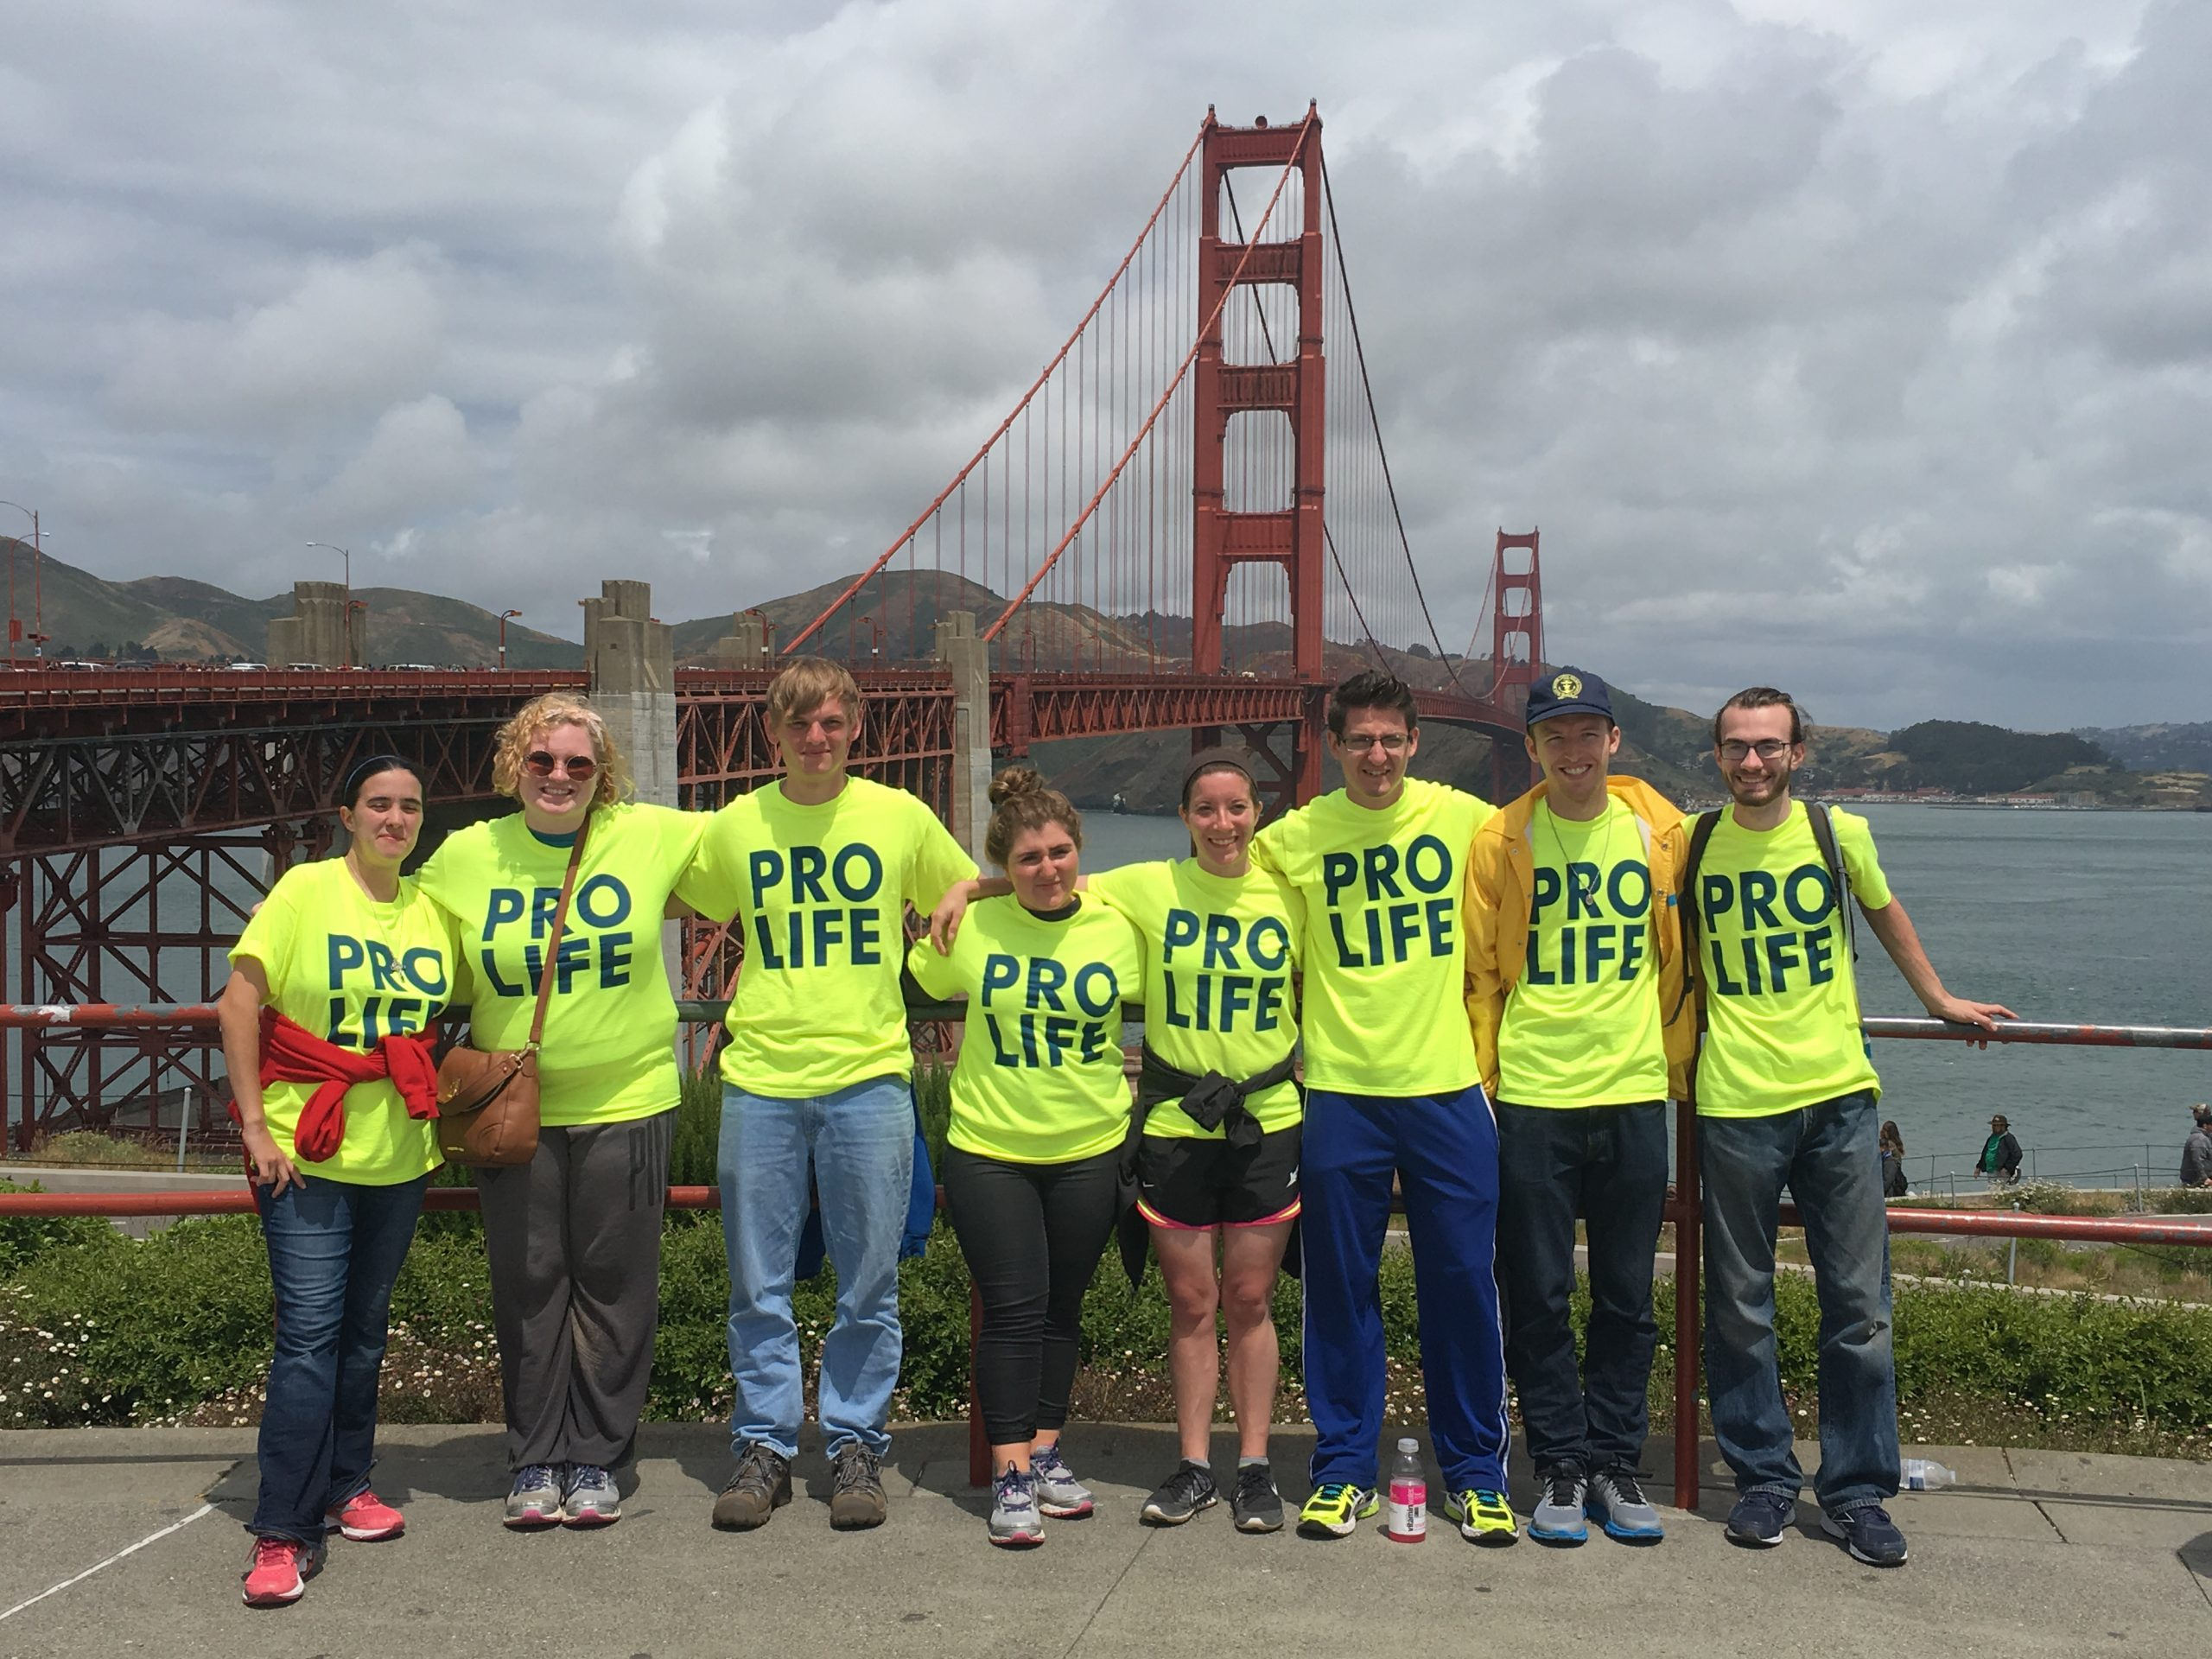 2015 Central Walk posing in front of the Golden Gate Bridge in San Francisco, CA.